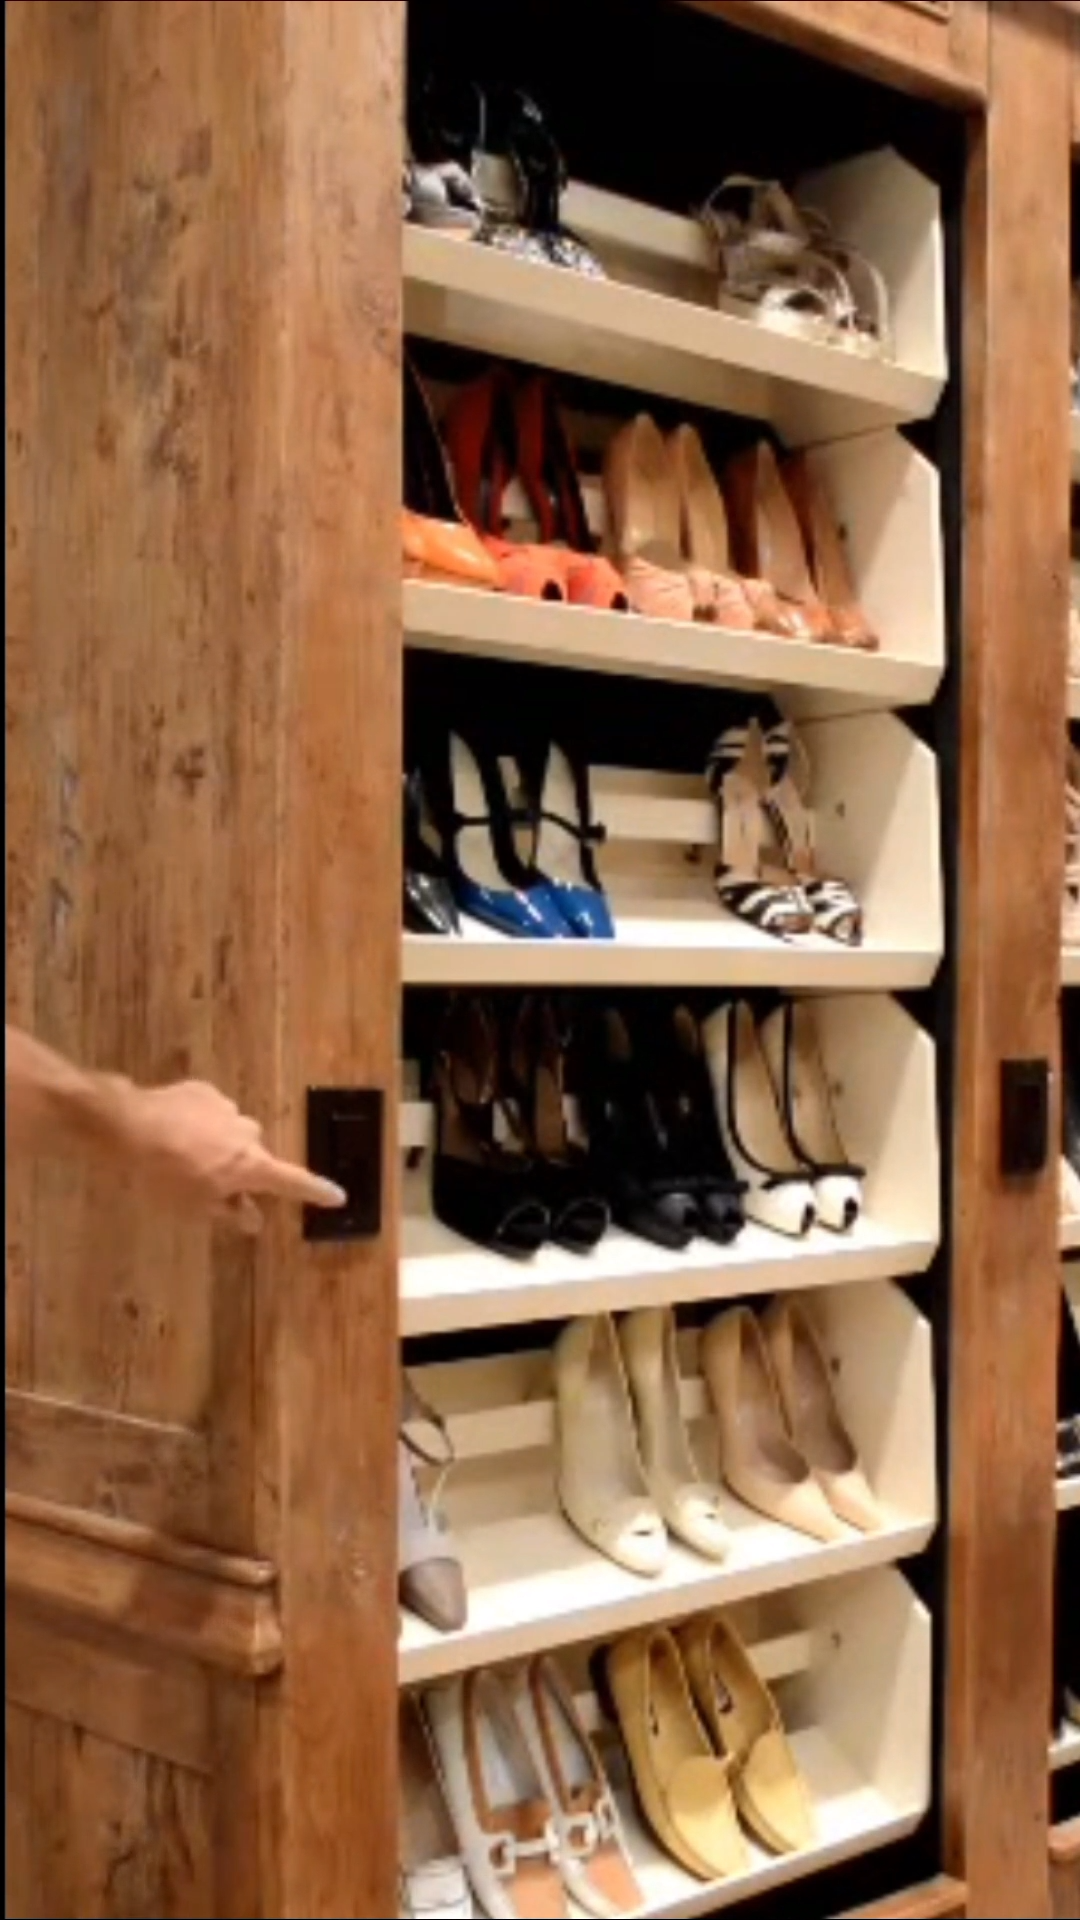 Auto Rotating Shoe Rack